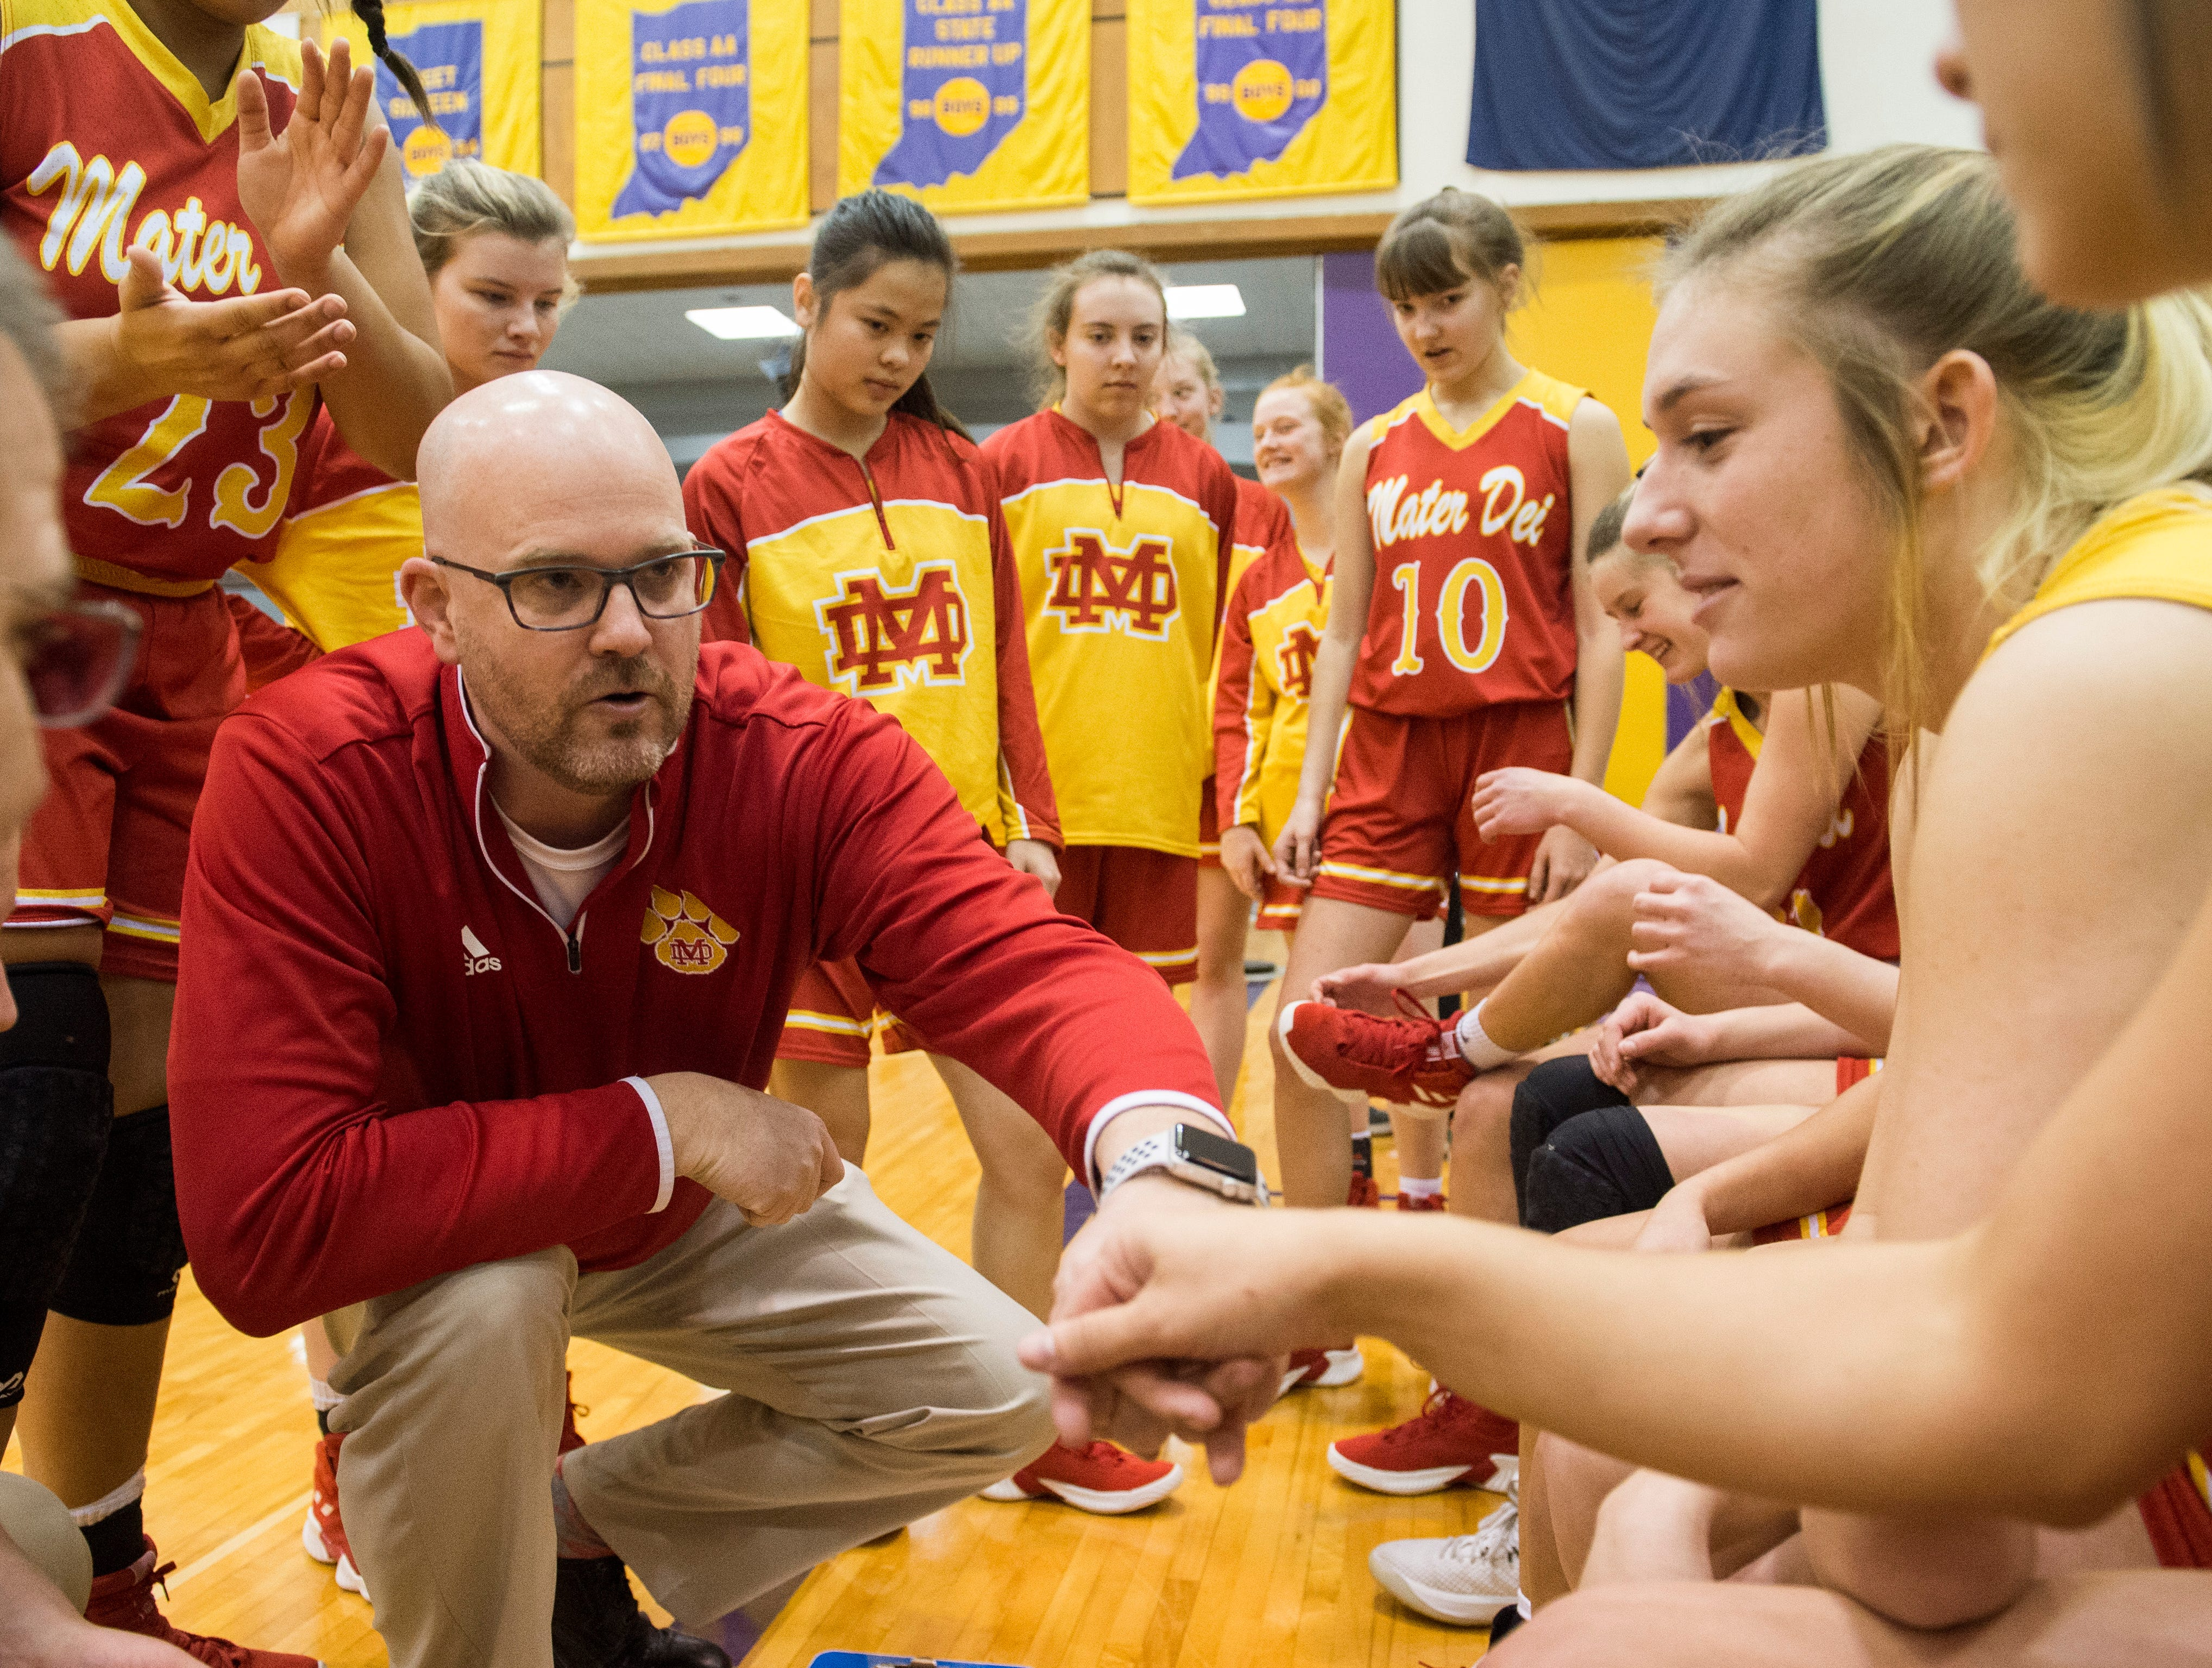 Mater Dei Head Coach Chad Breeden fist bumps the starters before the IHSAA Class 2A Girls' Basketball Regional #12 game against the South Ripley Raiders at Paoli Jr. Sr. high school Saturday, Feb. 9, 2019. Mater Dei Won, 39-23.